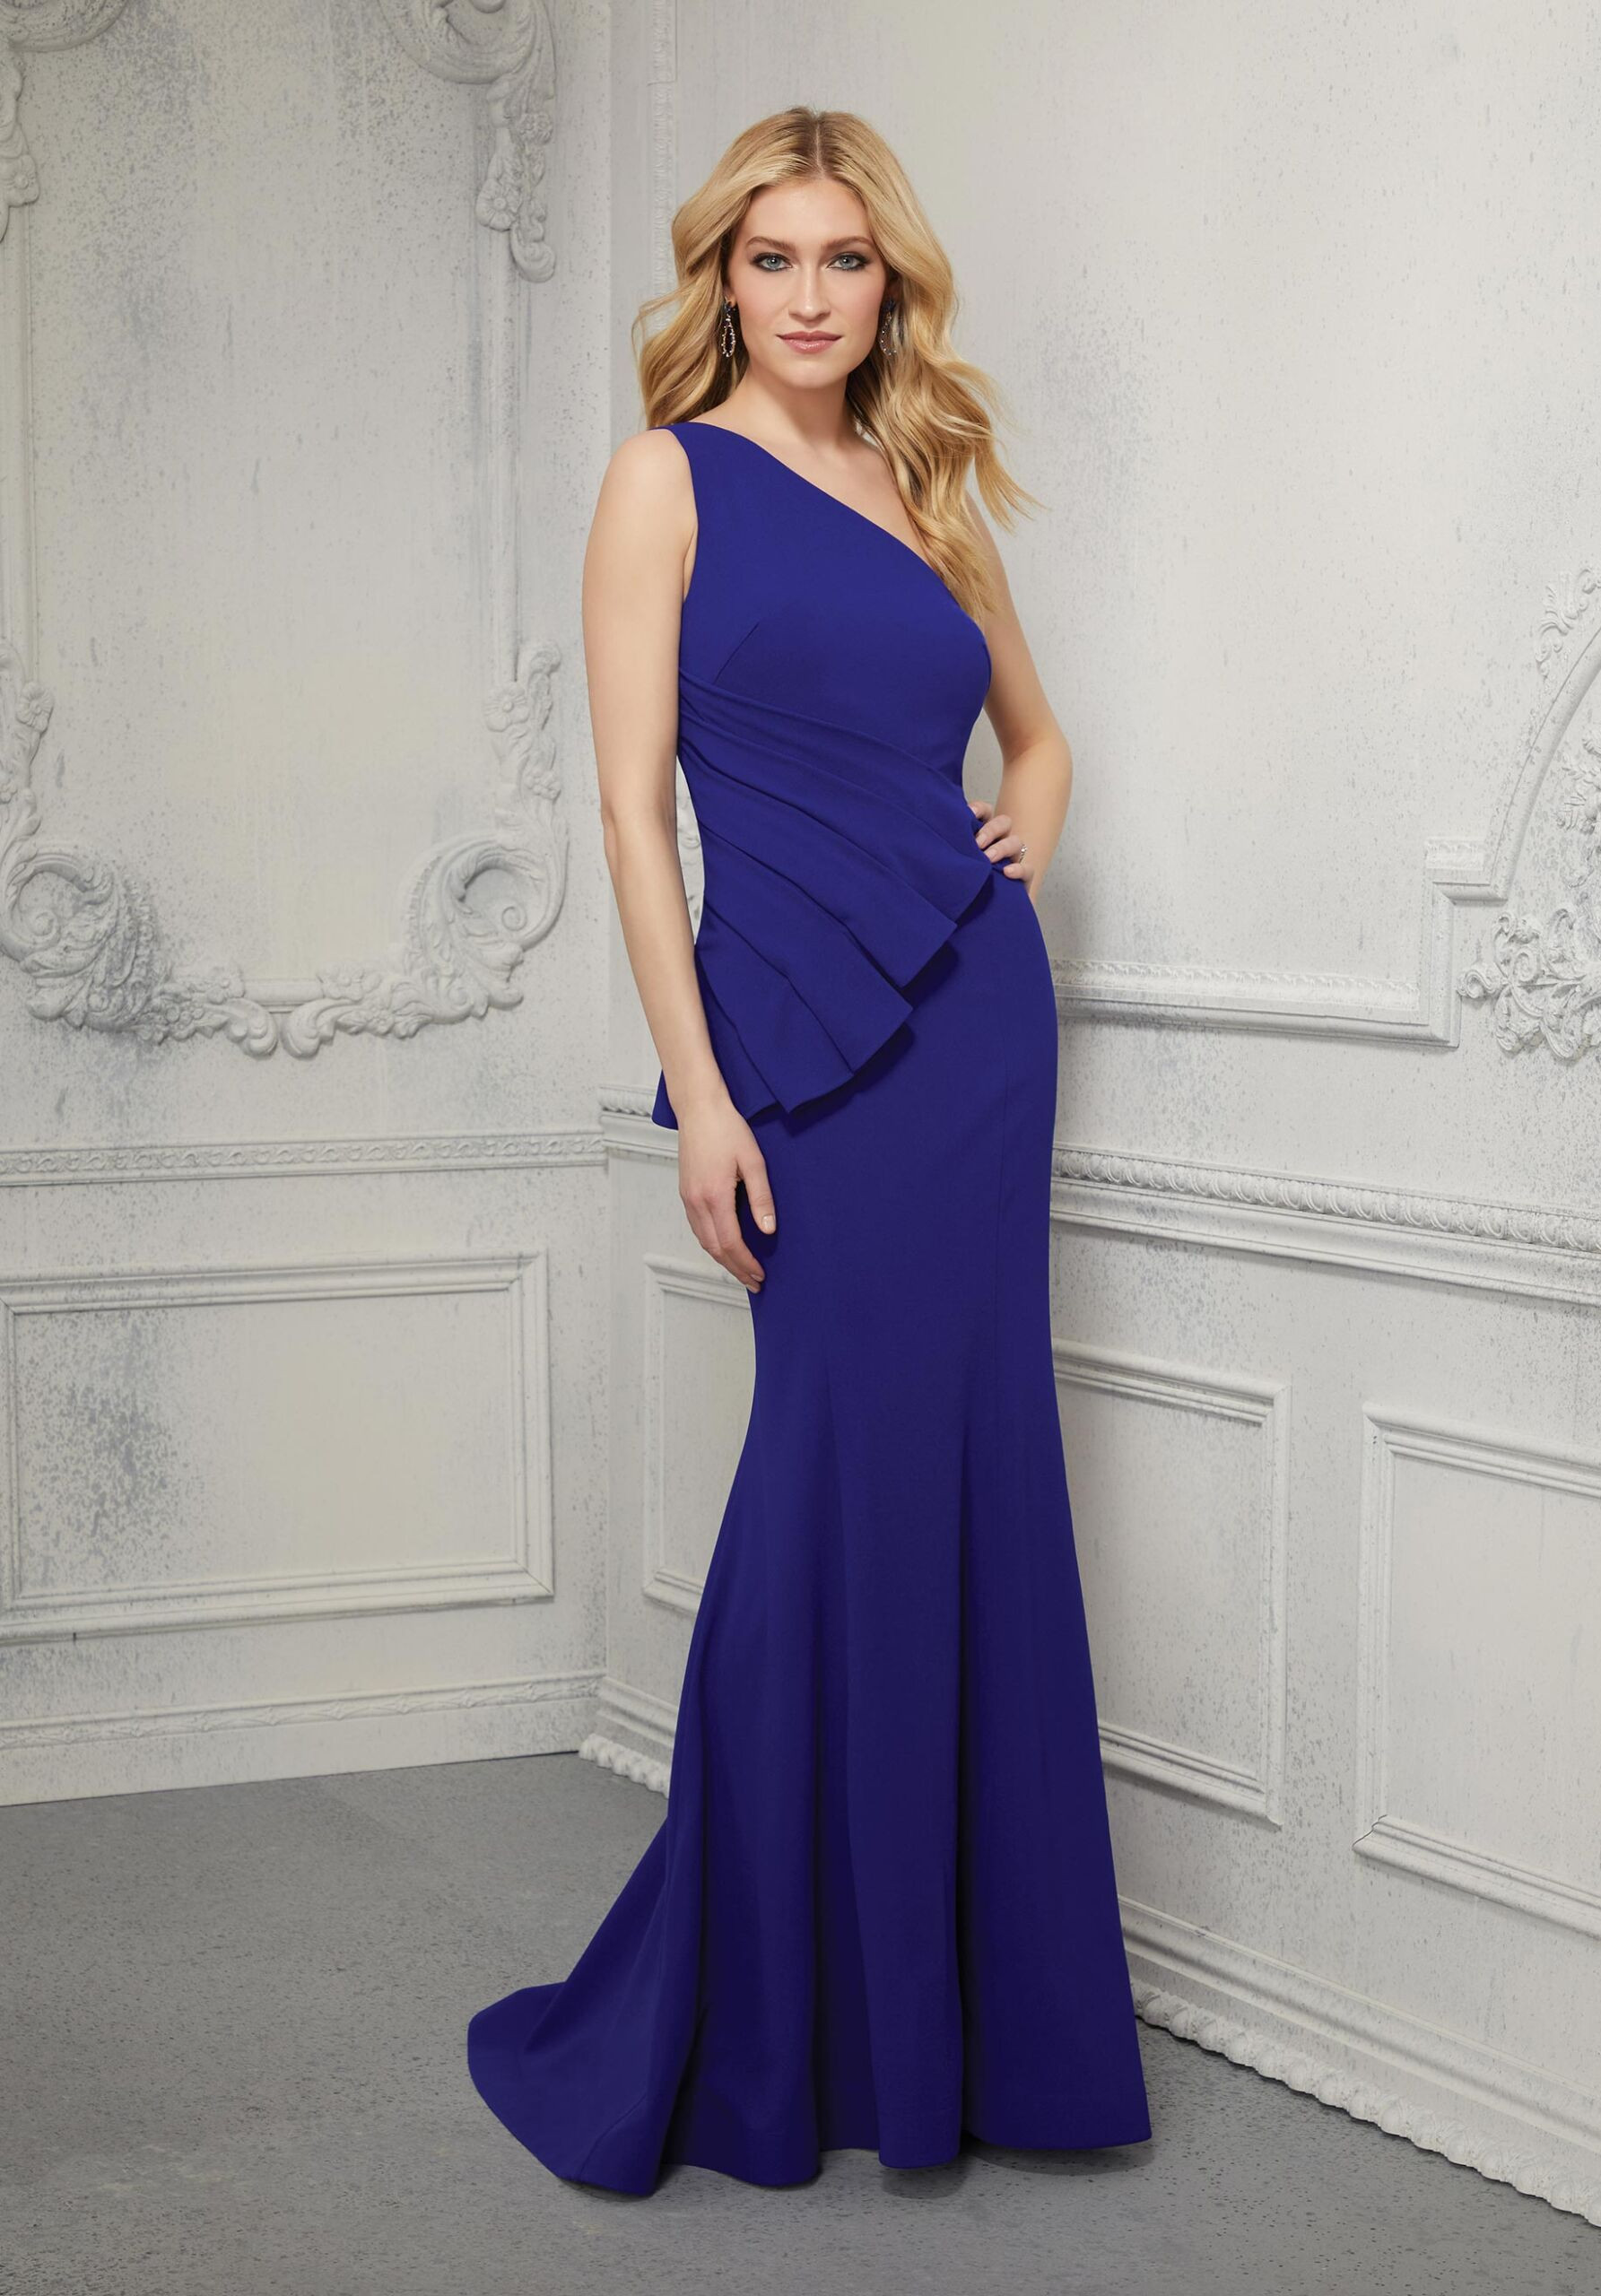 Stylish one-shoulder crepe evening gown with fun ruched waist detail.